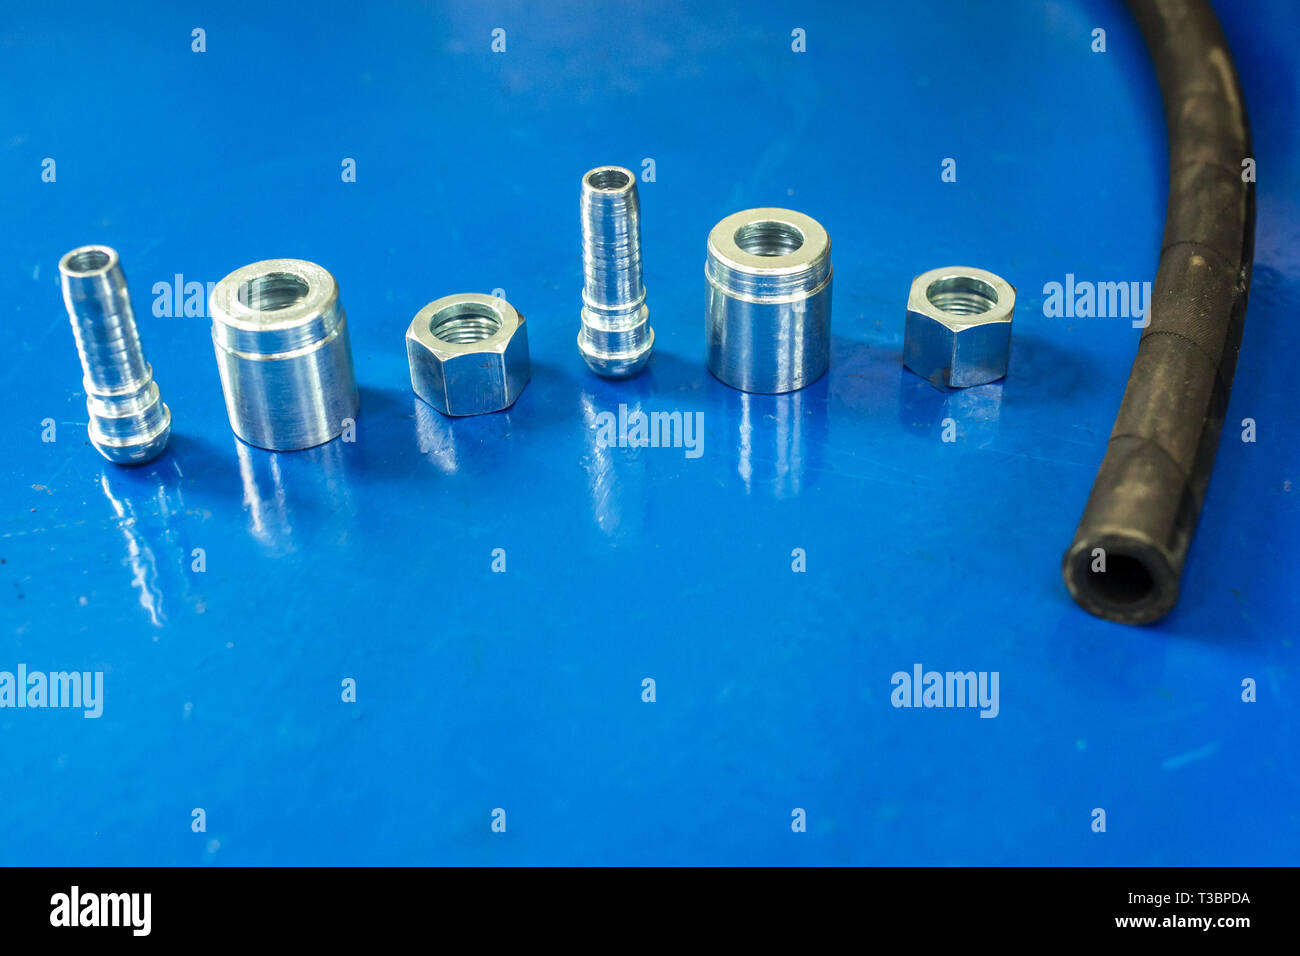 aluminum disassembled parts of high pressure hose with fittings - Stock Image